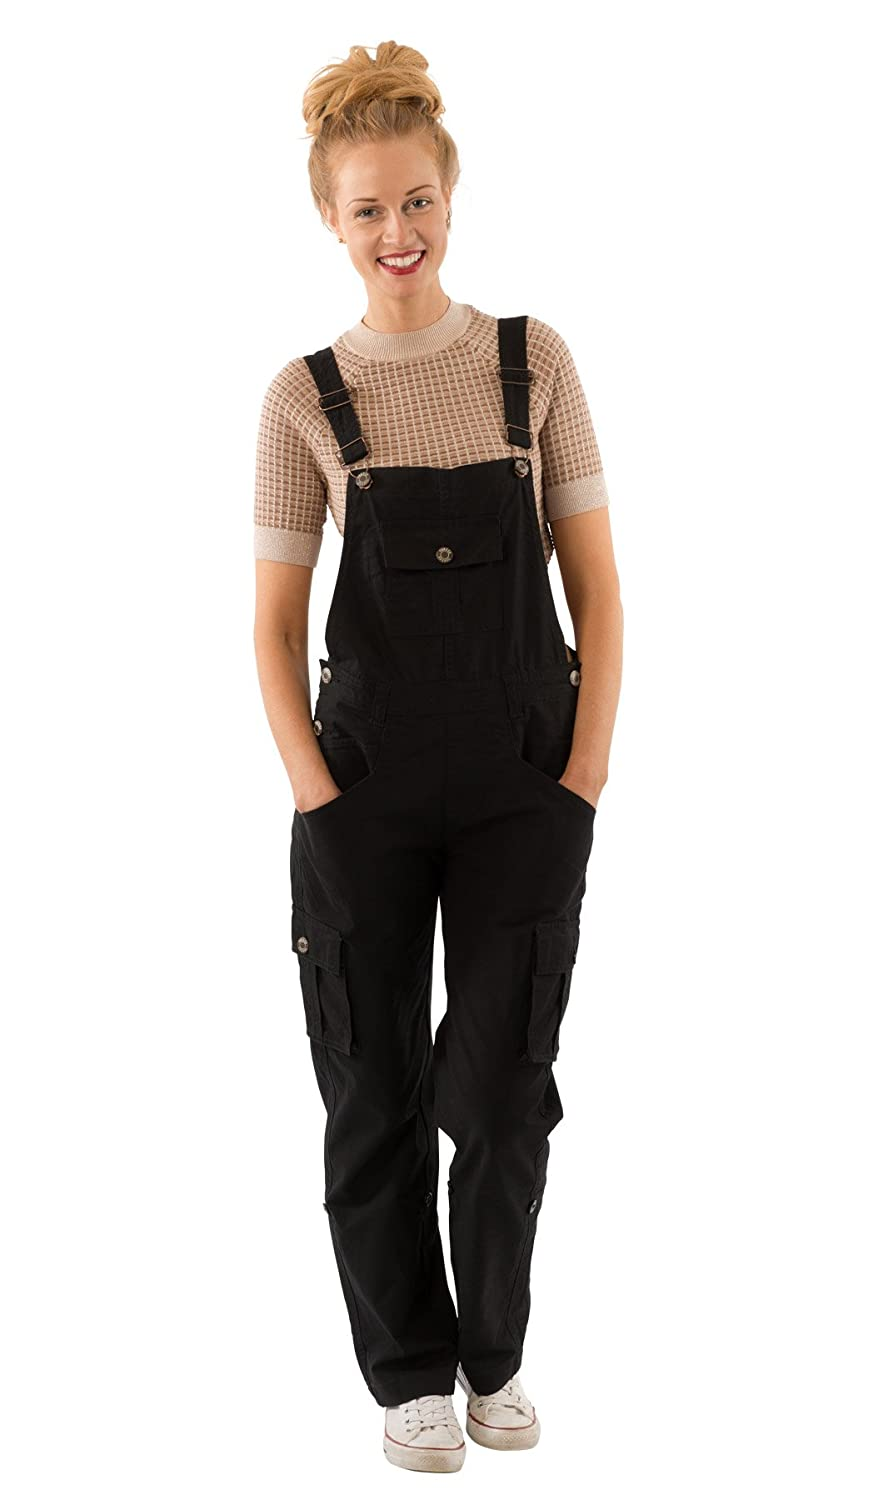 USKEES Daisy Women's Black Cotton Bib Overalls Loose Fit Roll-up leg Overalls